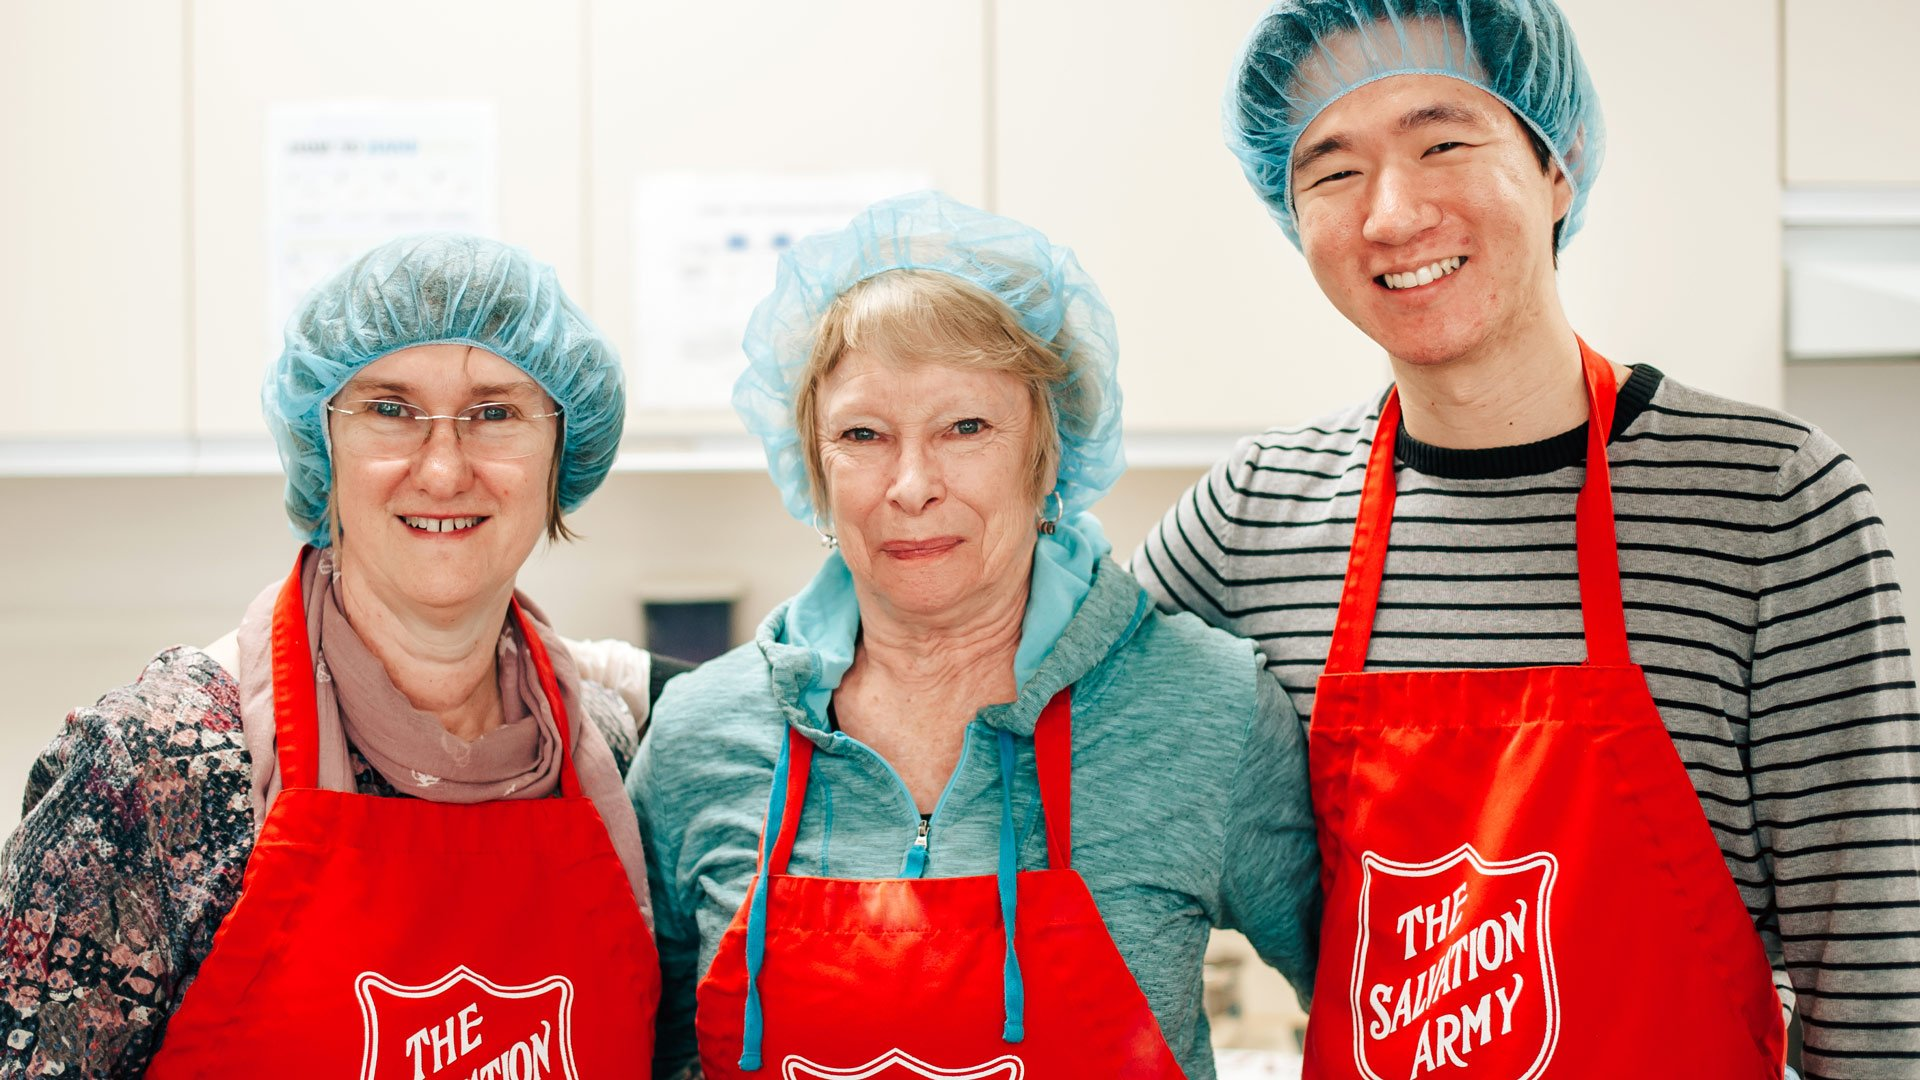 about-team-and-culture-salvation-army-vancouver-boundless